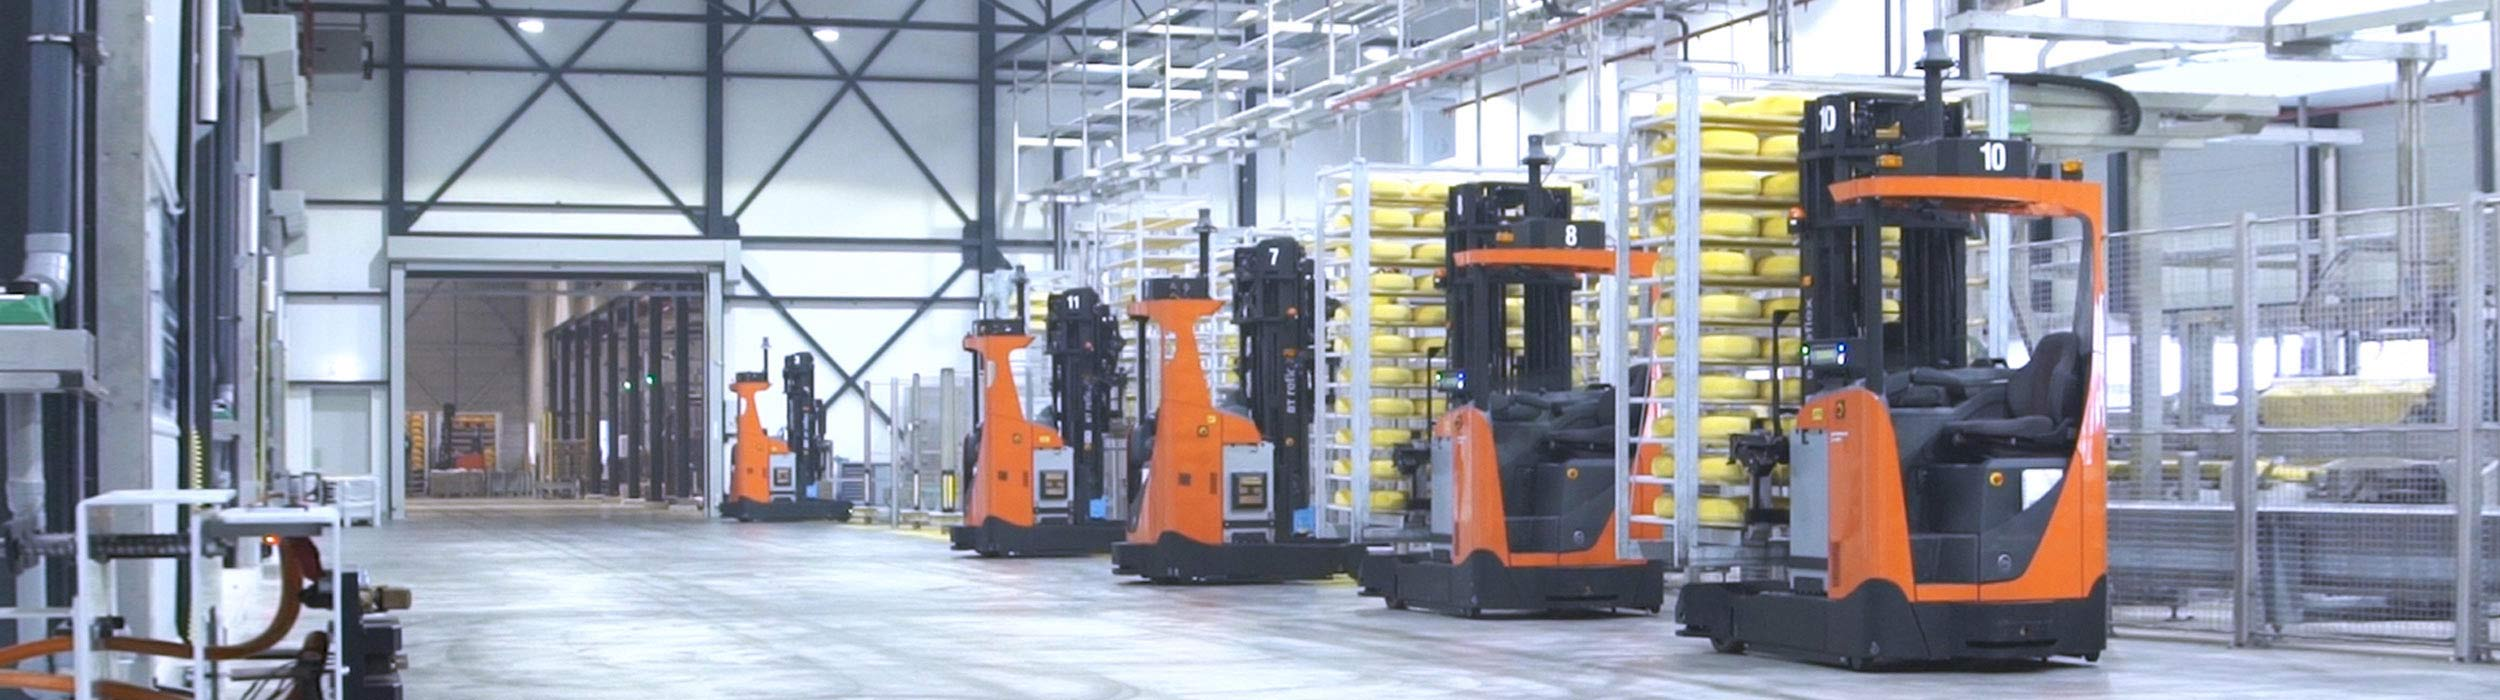 Automated trucks in factory